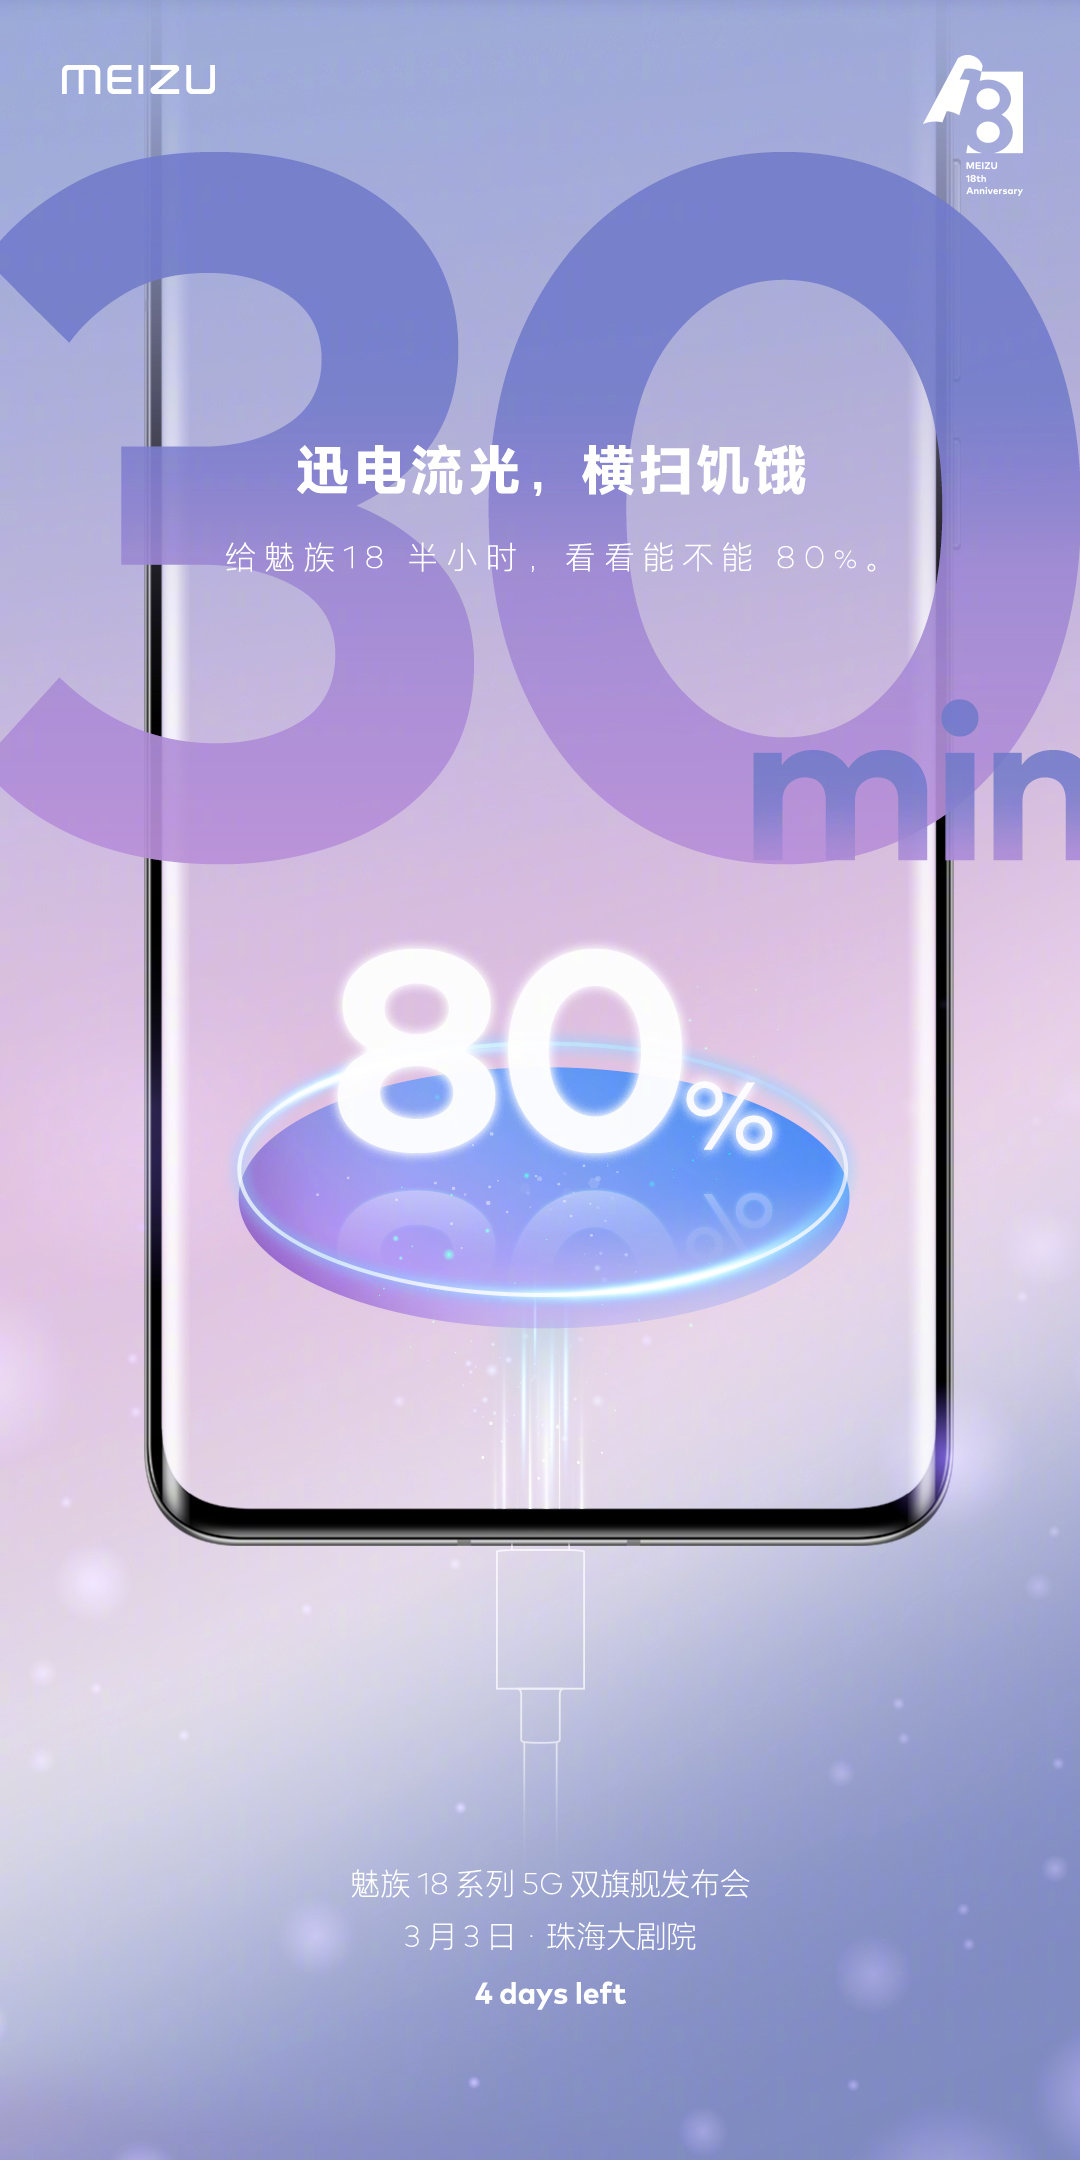 Meizu 18 charging time 80 percentage in 30 minutes